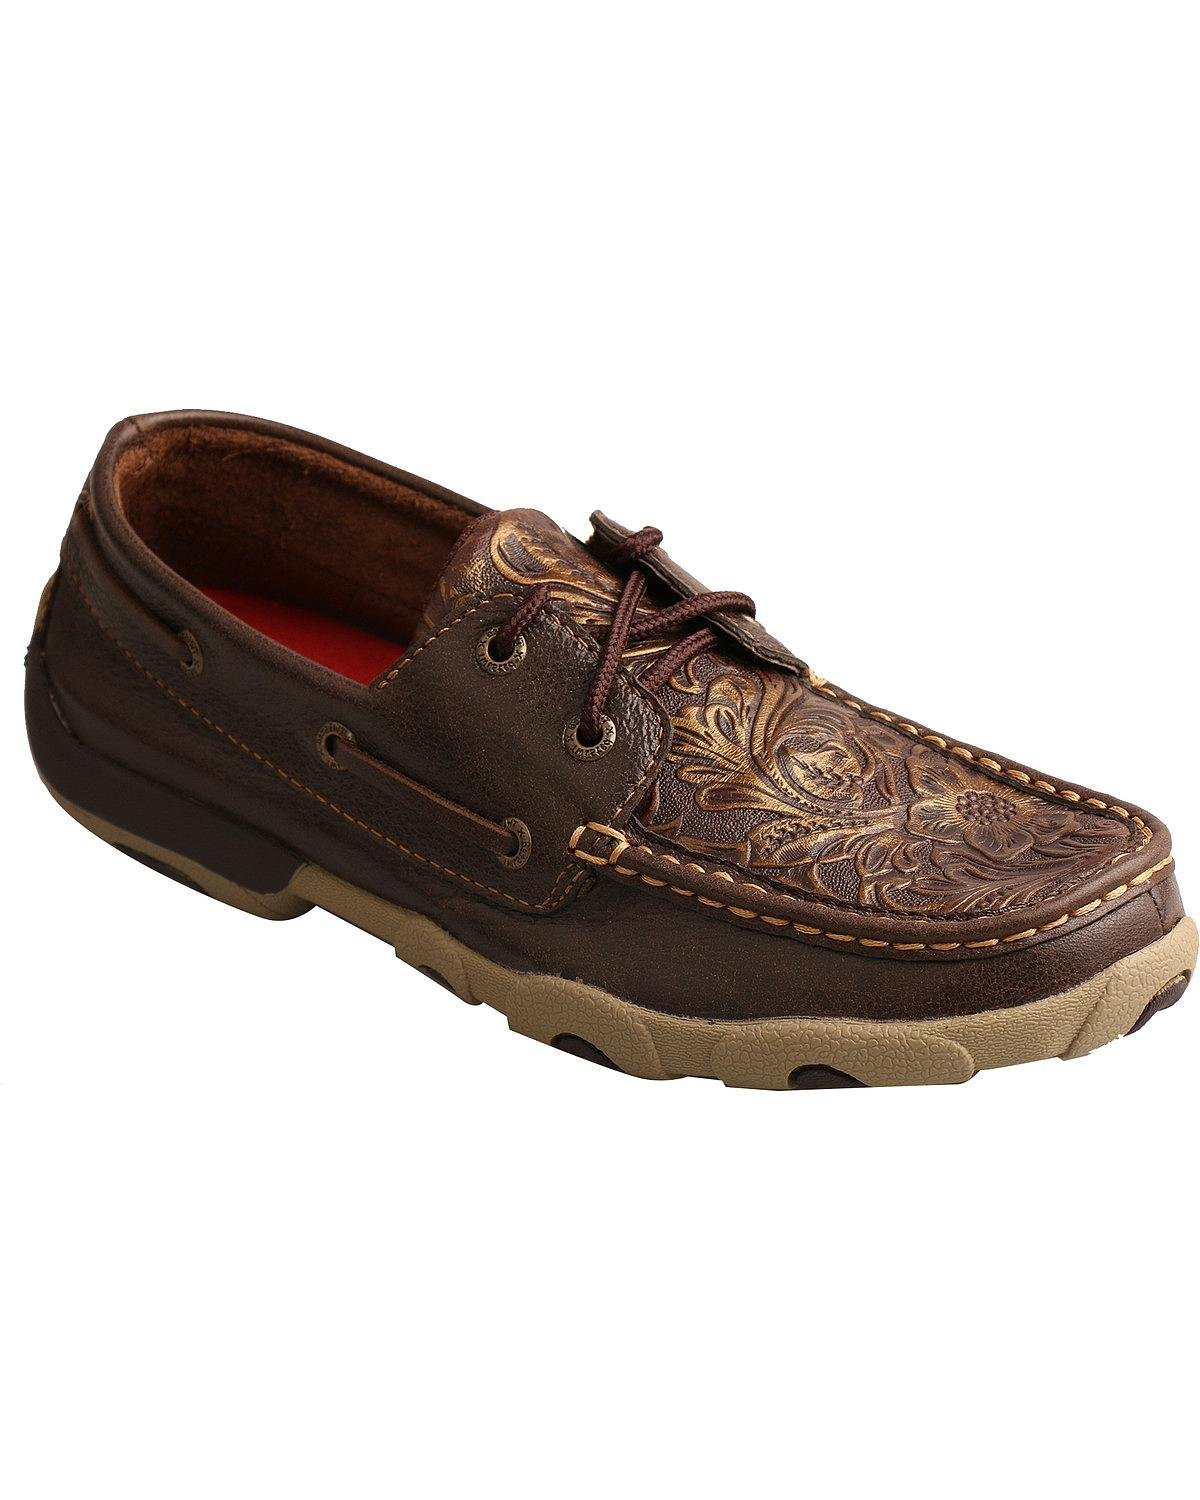 Twisted X Womens Driving Moccasins B073RMCTMT 7.5 B(M) US|Brown